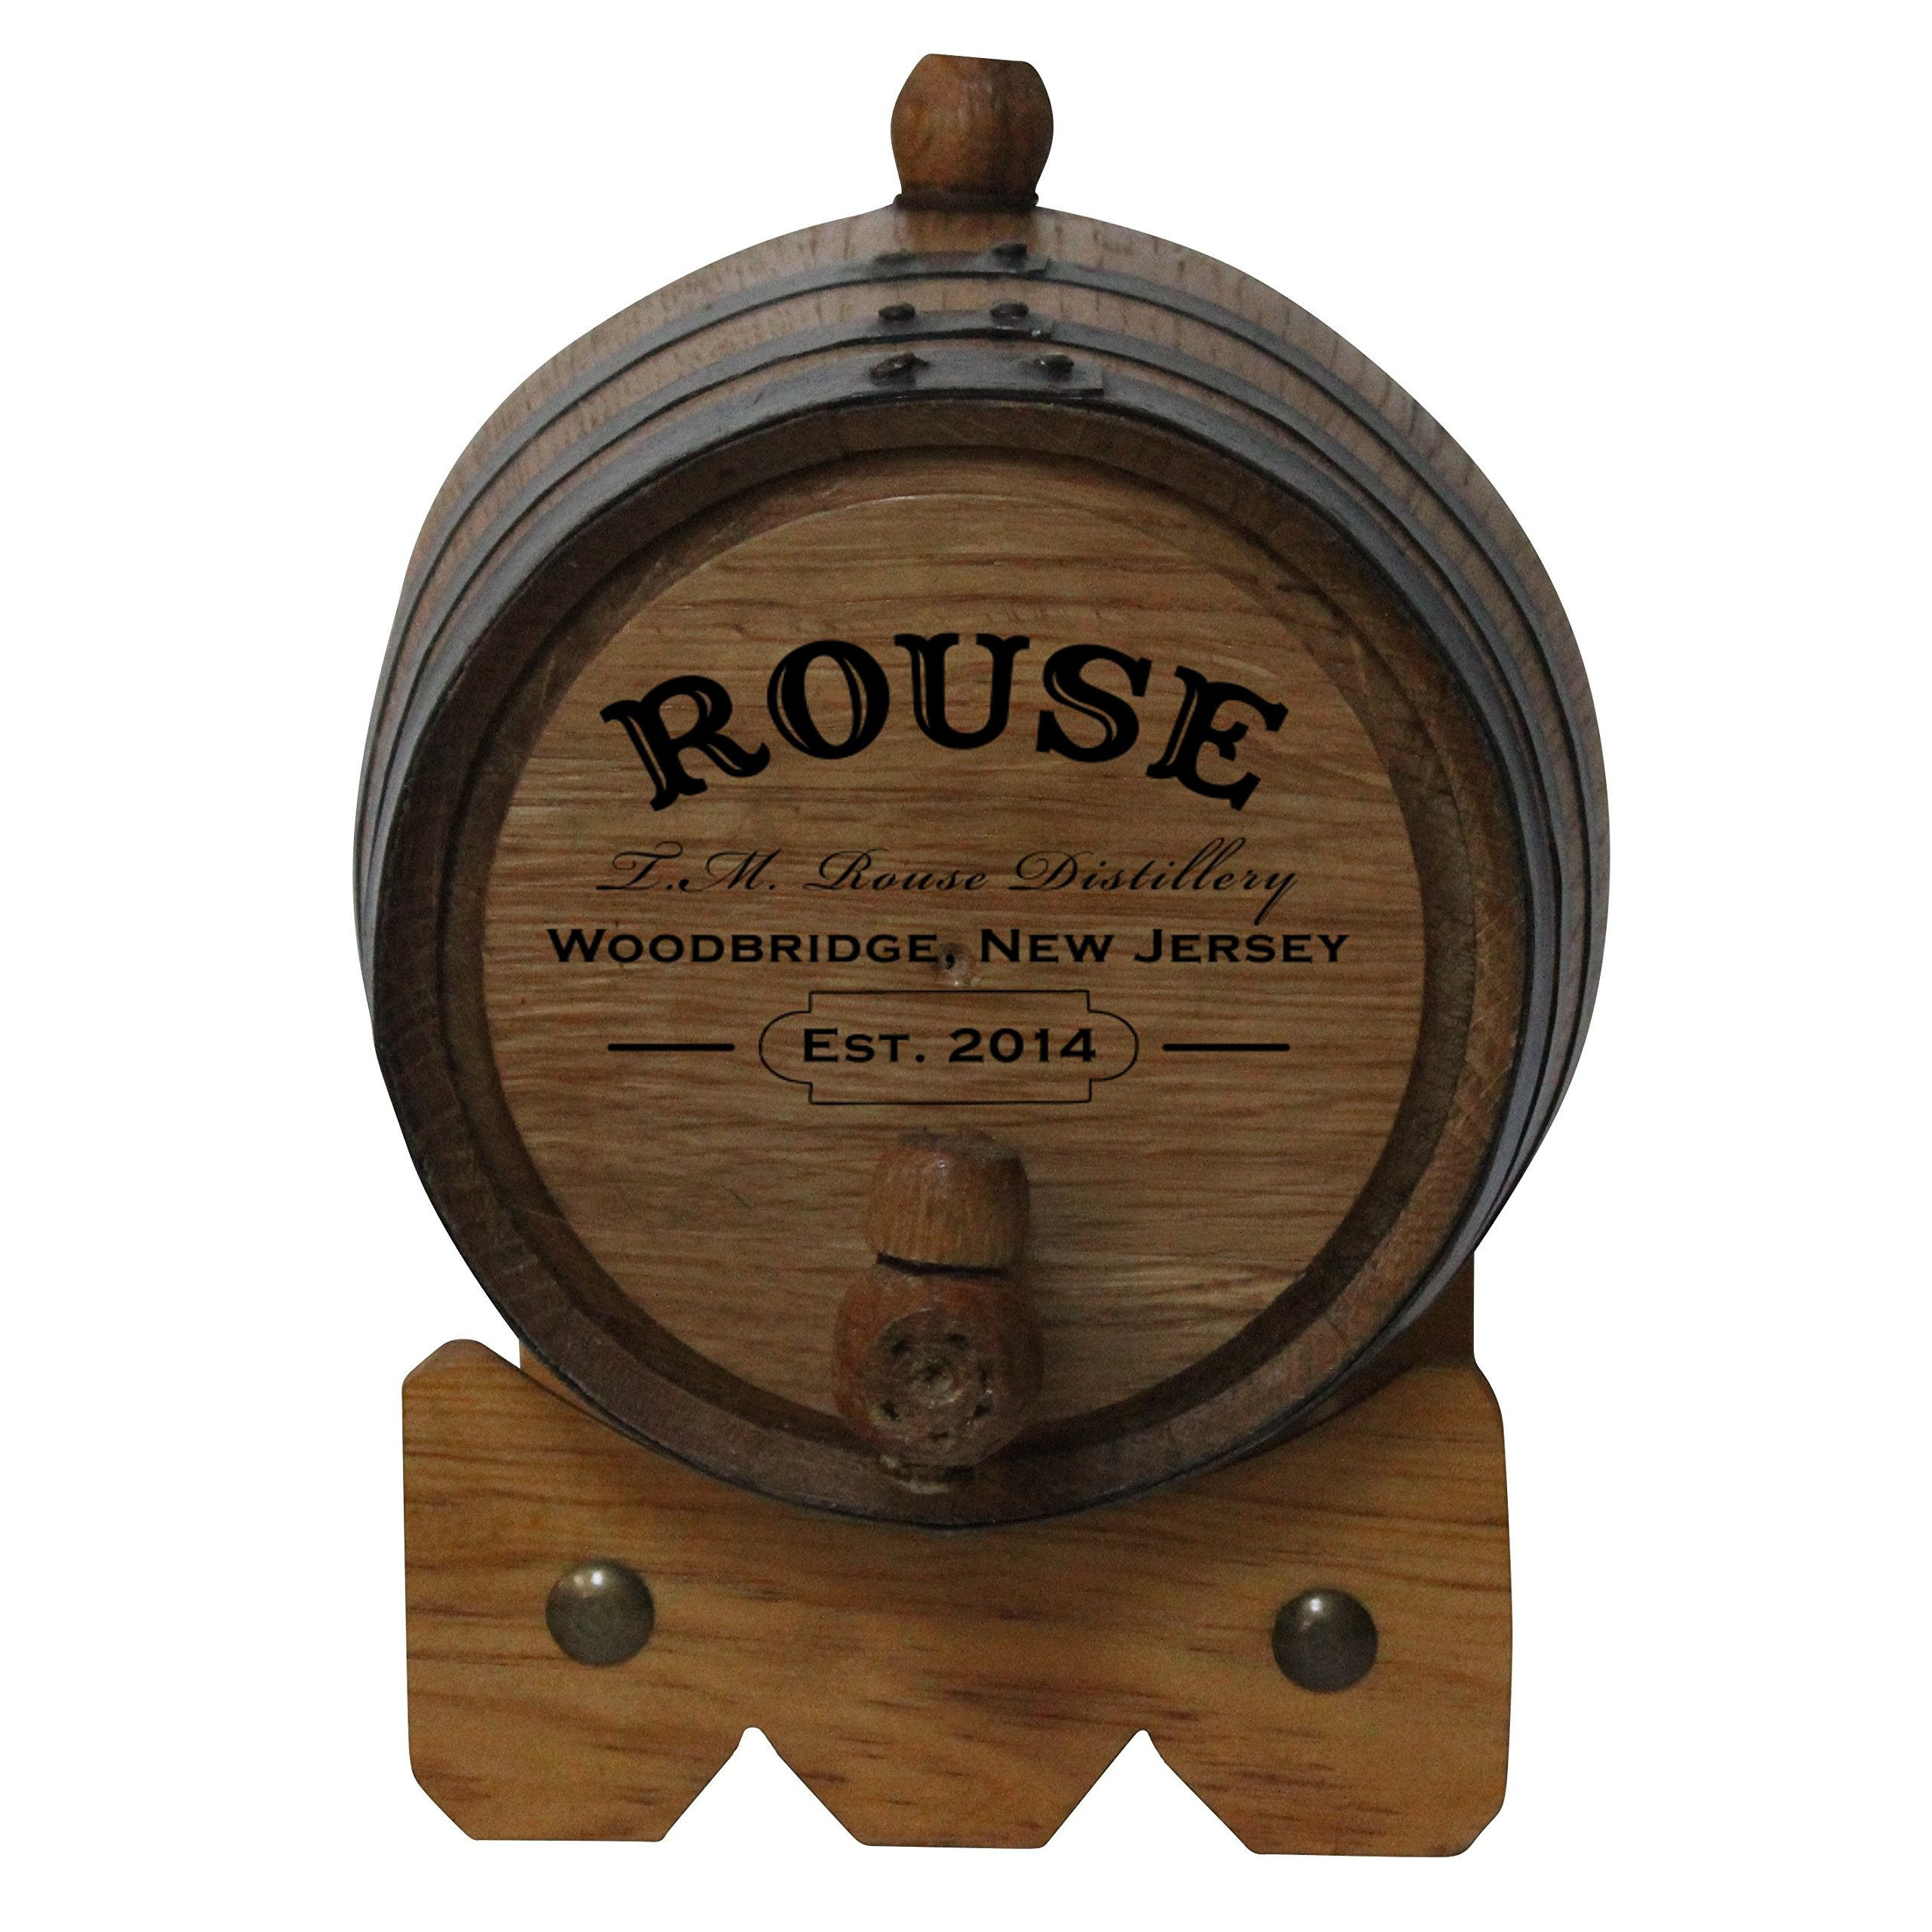 Deep South Barrels Personalized Oak Barrel | American White Oak | Custom Laser Engraved | Dispenser for Aging Whiskey, Rum, Tequila, Bourbon, Vinegar and Wine by Deep South Barrels (Image #4)